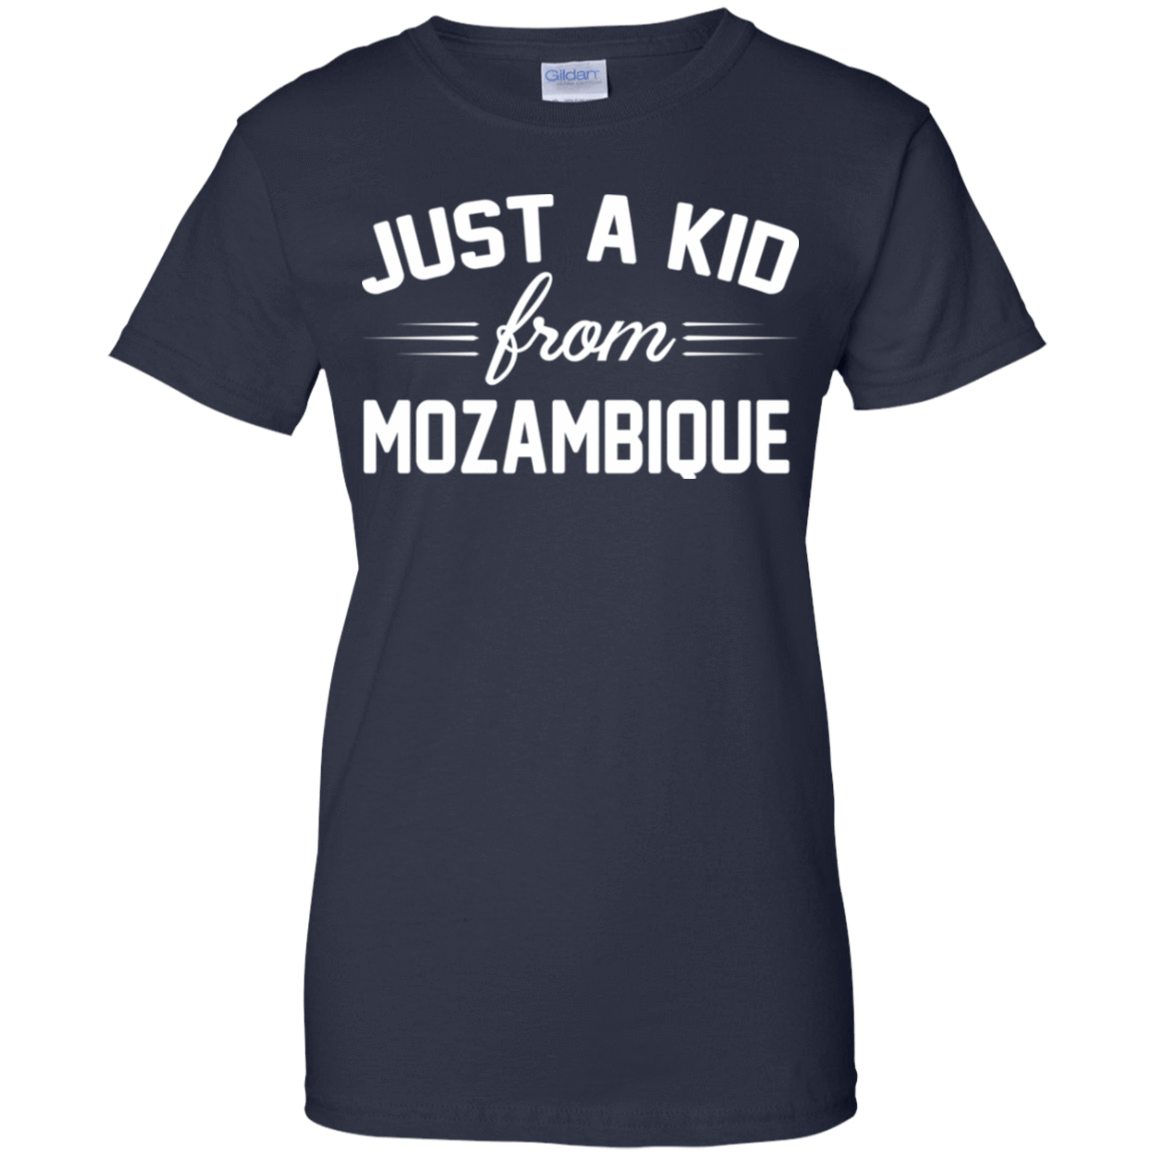 Just a Kid Store | Mozambique T-Shirts, Hoodie, Tank 939-9259-72091589-44765 - Tee Ript